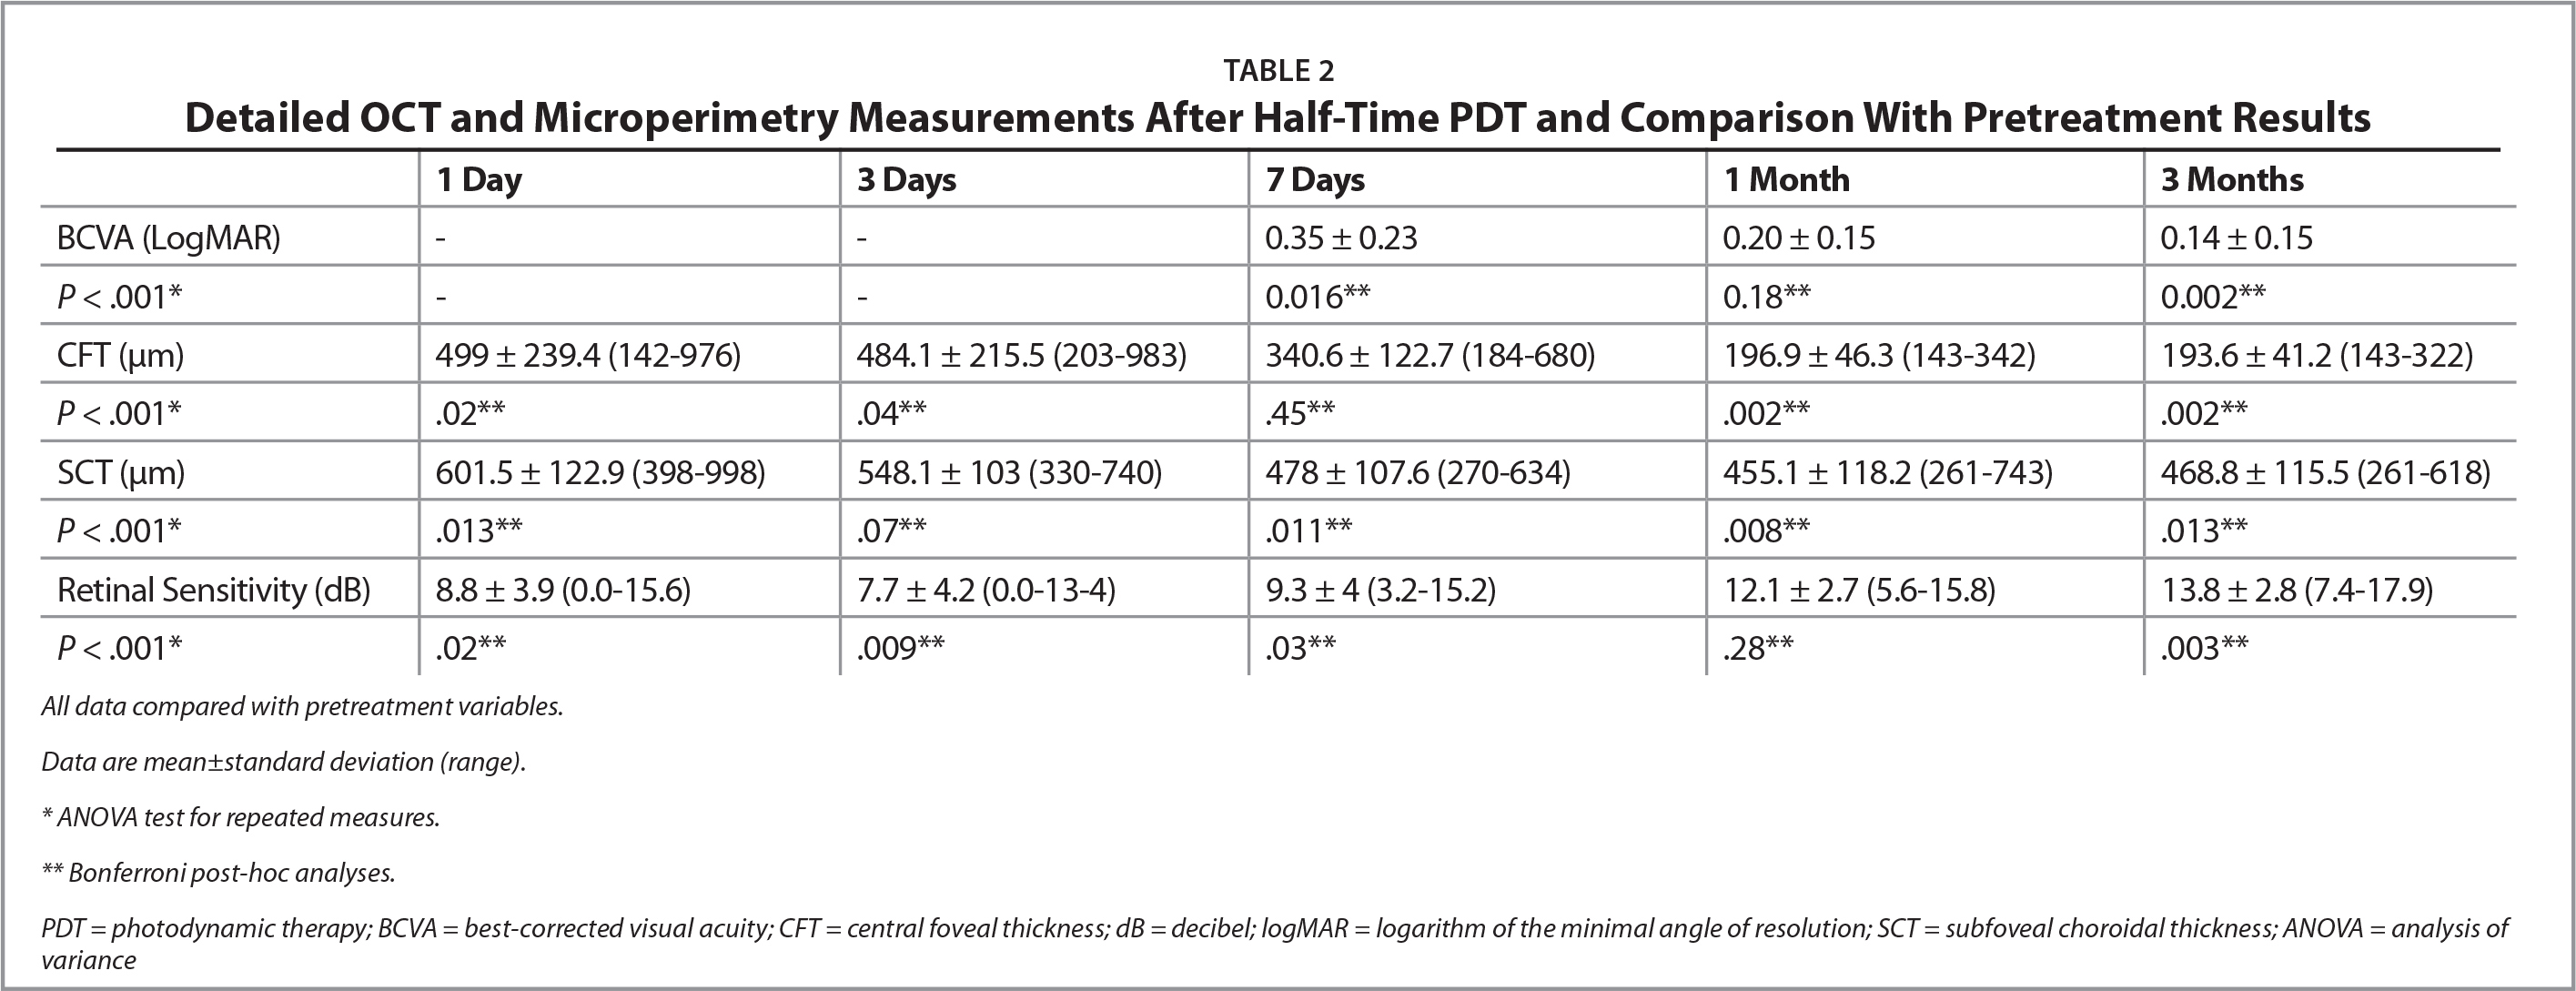 Detailed OCT and Microperimetry Measurements After Half-Time PDT and Comparison With Pretreatment Results